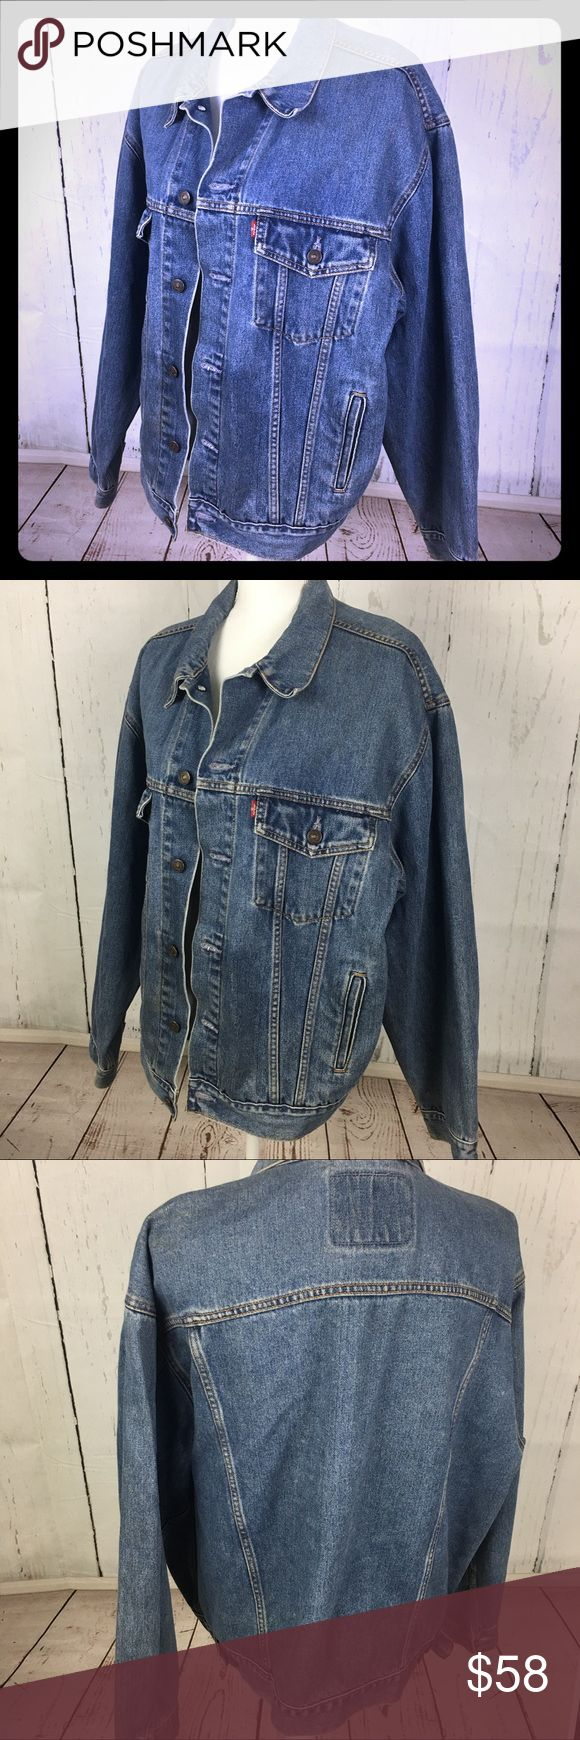 Vintage Classic Levi's Jacket Standard Trucker Size Large Jean Jacket Standard Trucker 70507  ❤️💜💗 100% Cotton. Men's Jacket but sexy as an oversized jacket for us ladies ☘️☘️☘️ Levi's Jackets & Coats Jean Jackets